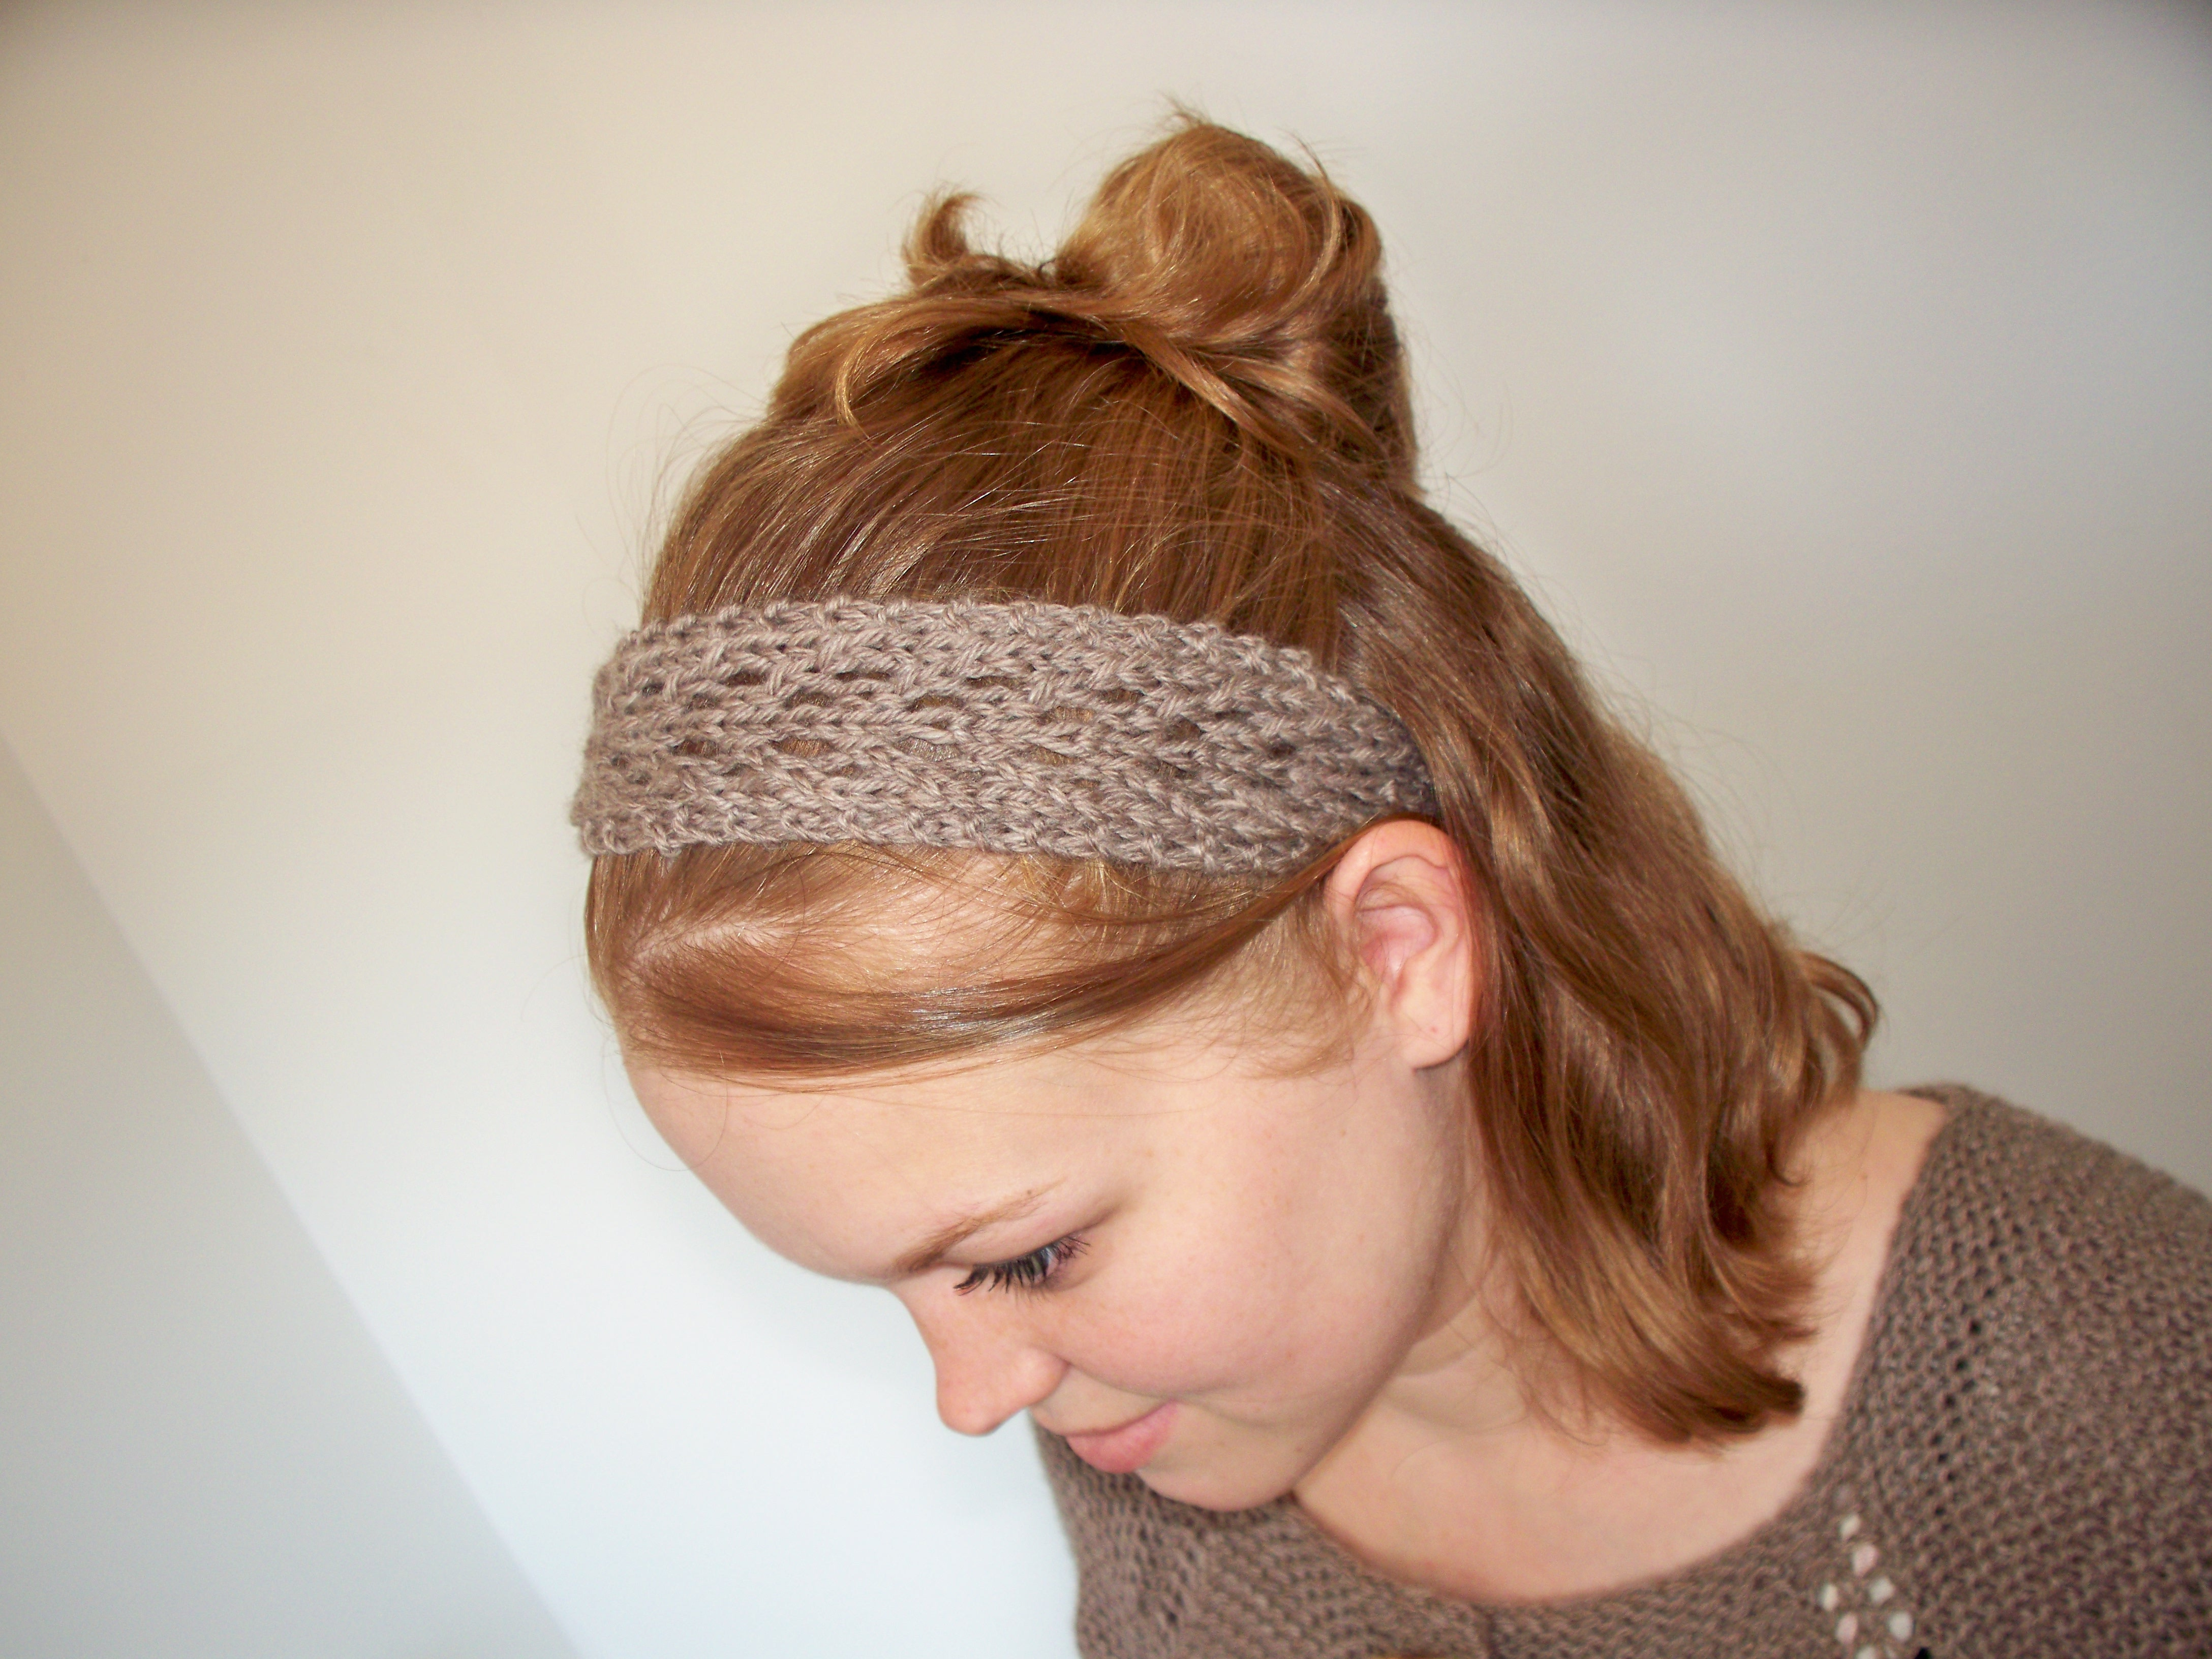 Knitting Patterns Galore - February Lady Lace Headband